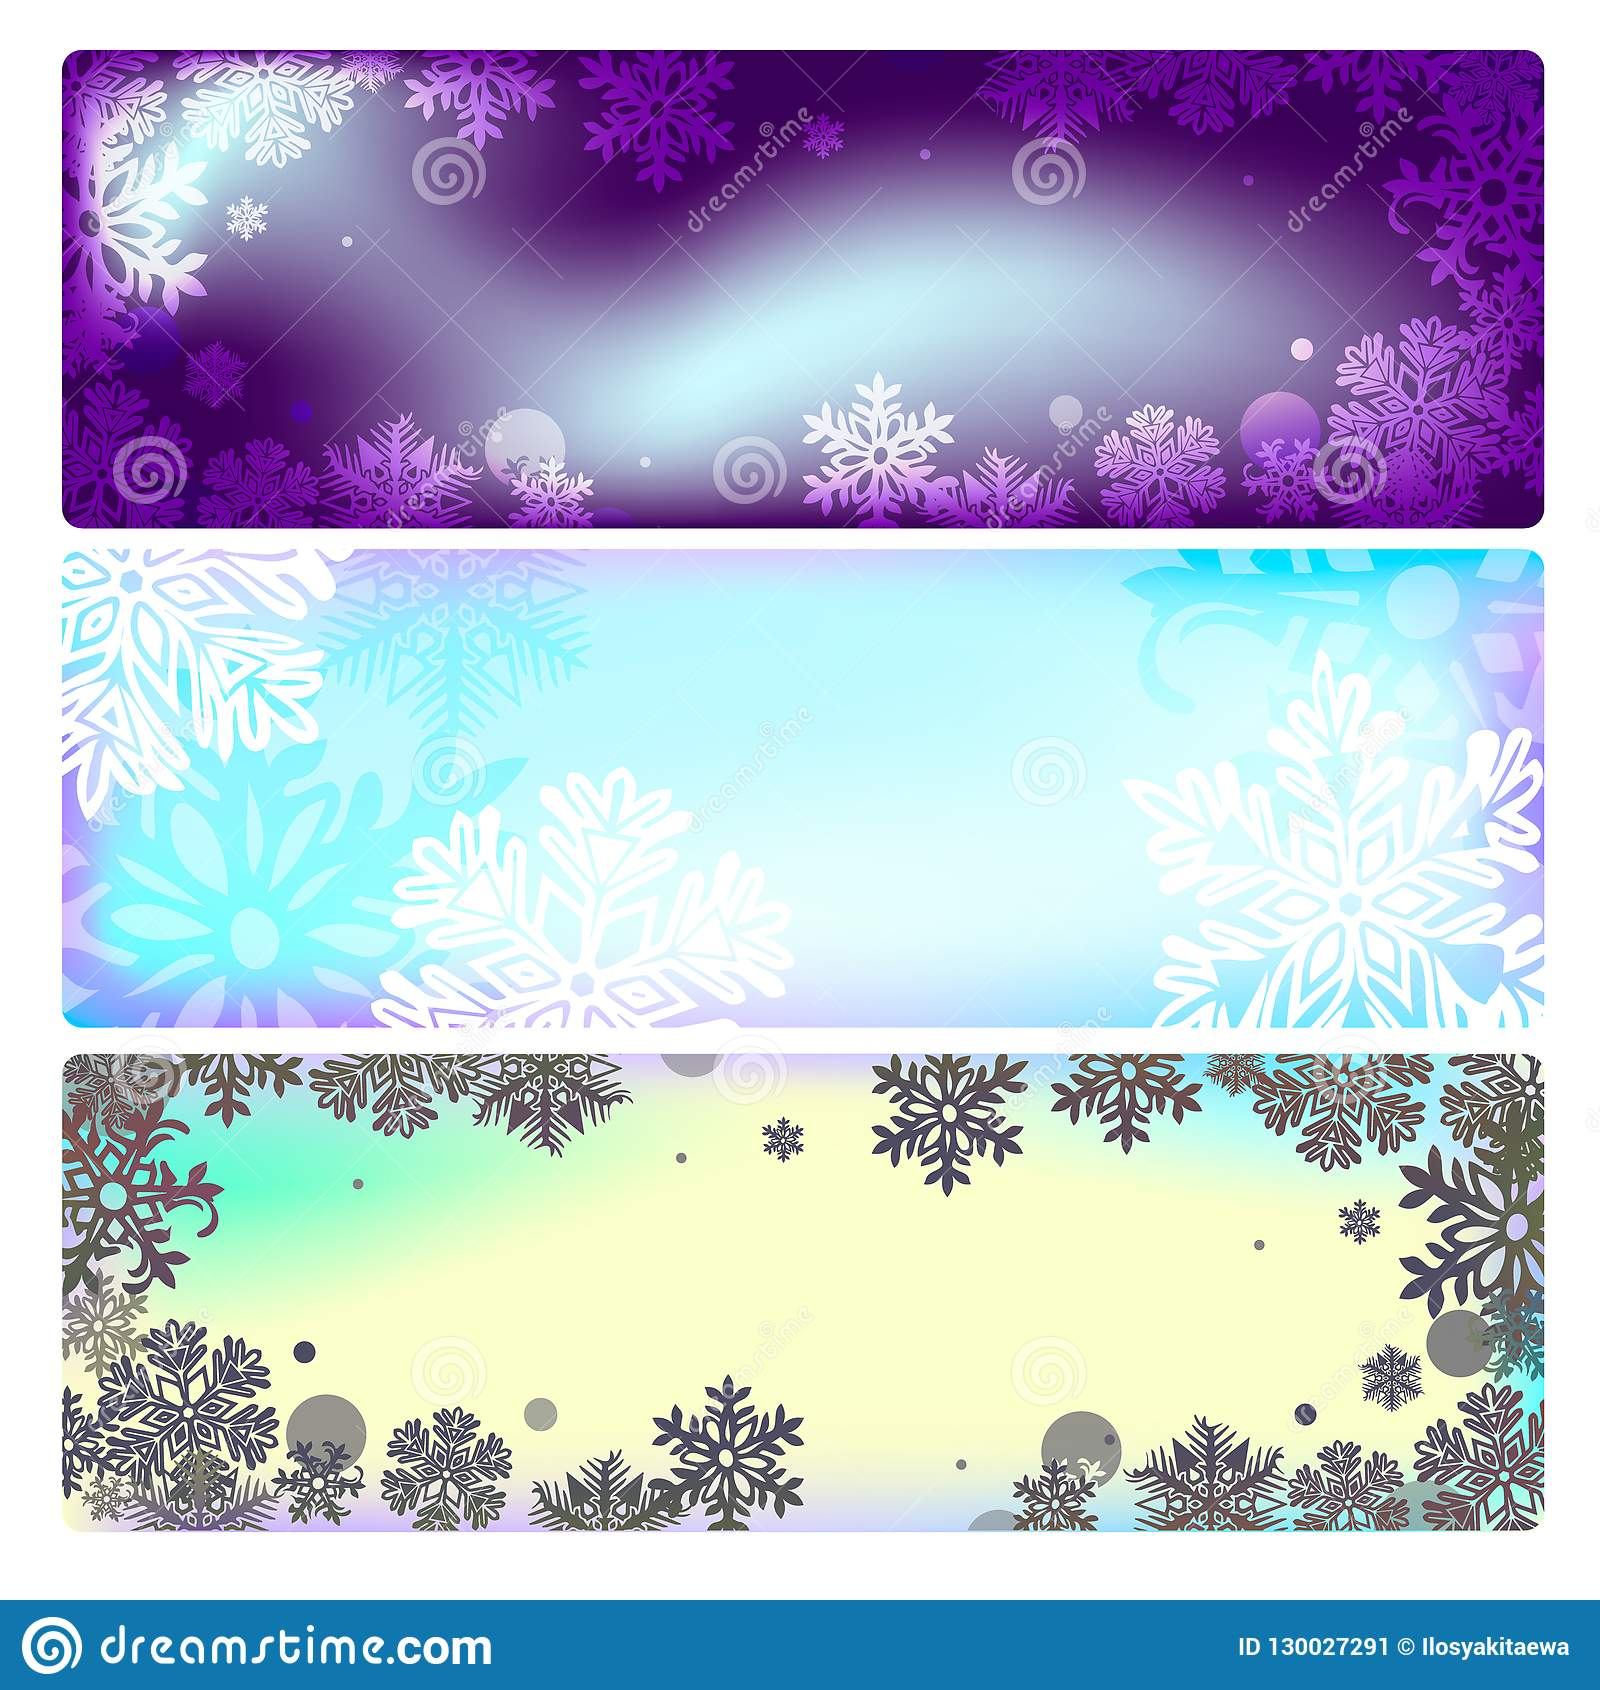 vector set of banners isolated on white background for the design